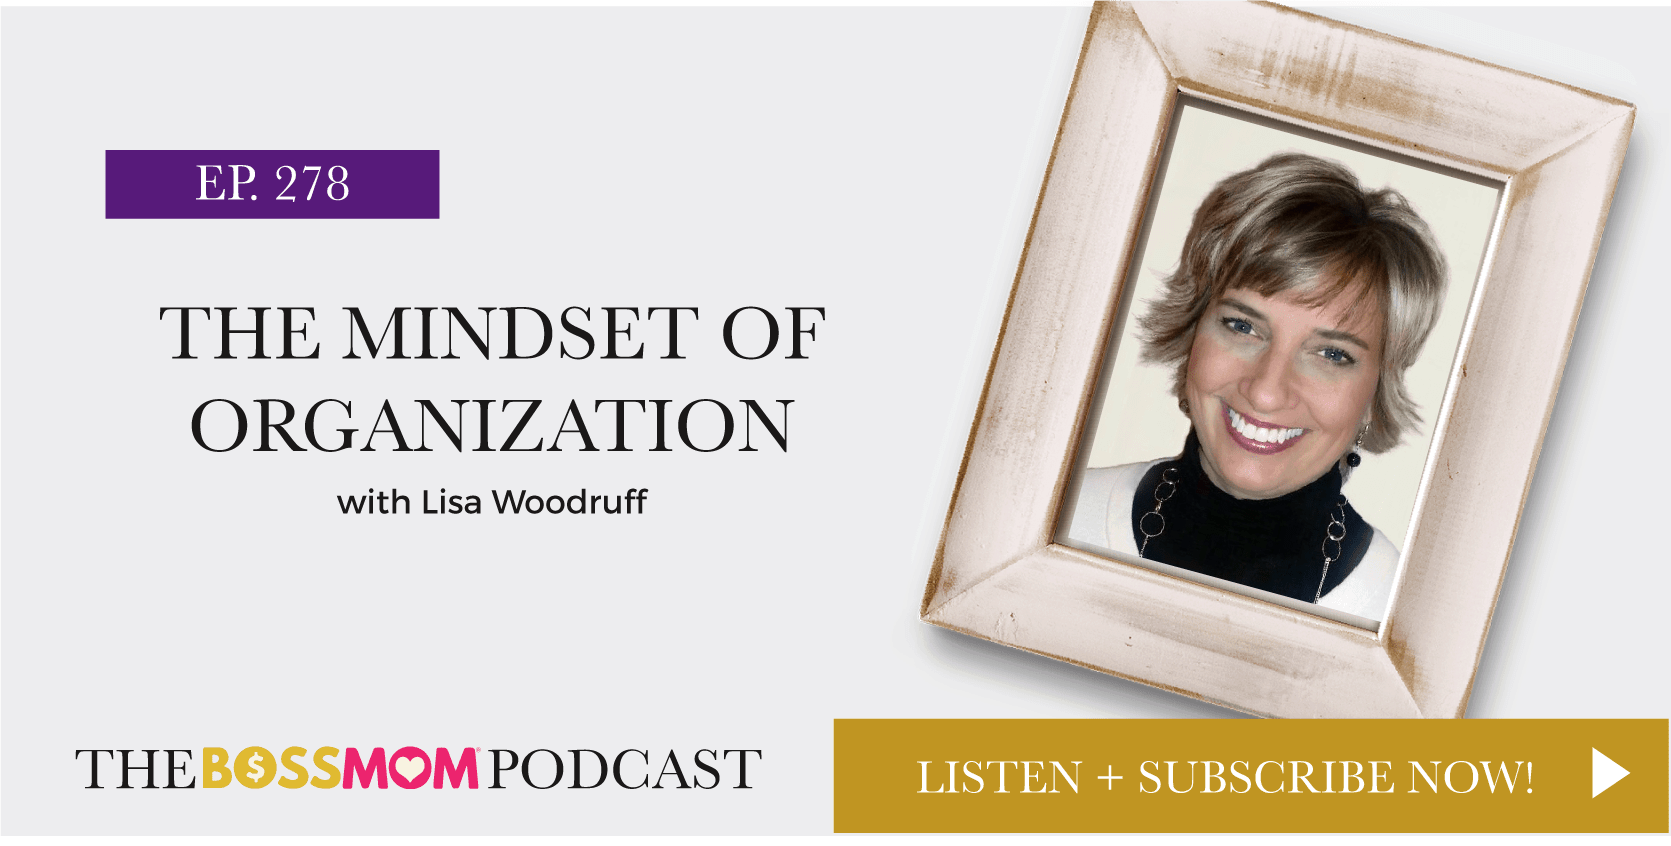 Episode 278: The Mindset of Organization with Lisa Woodruff